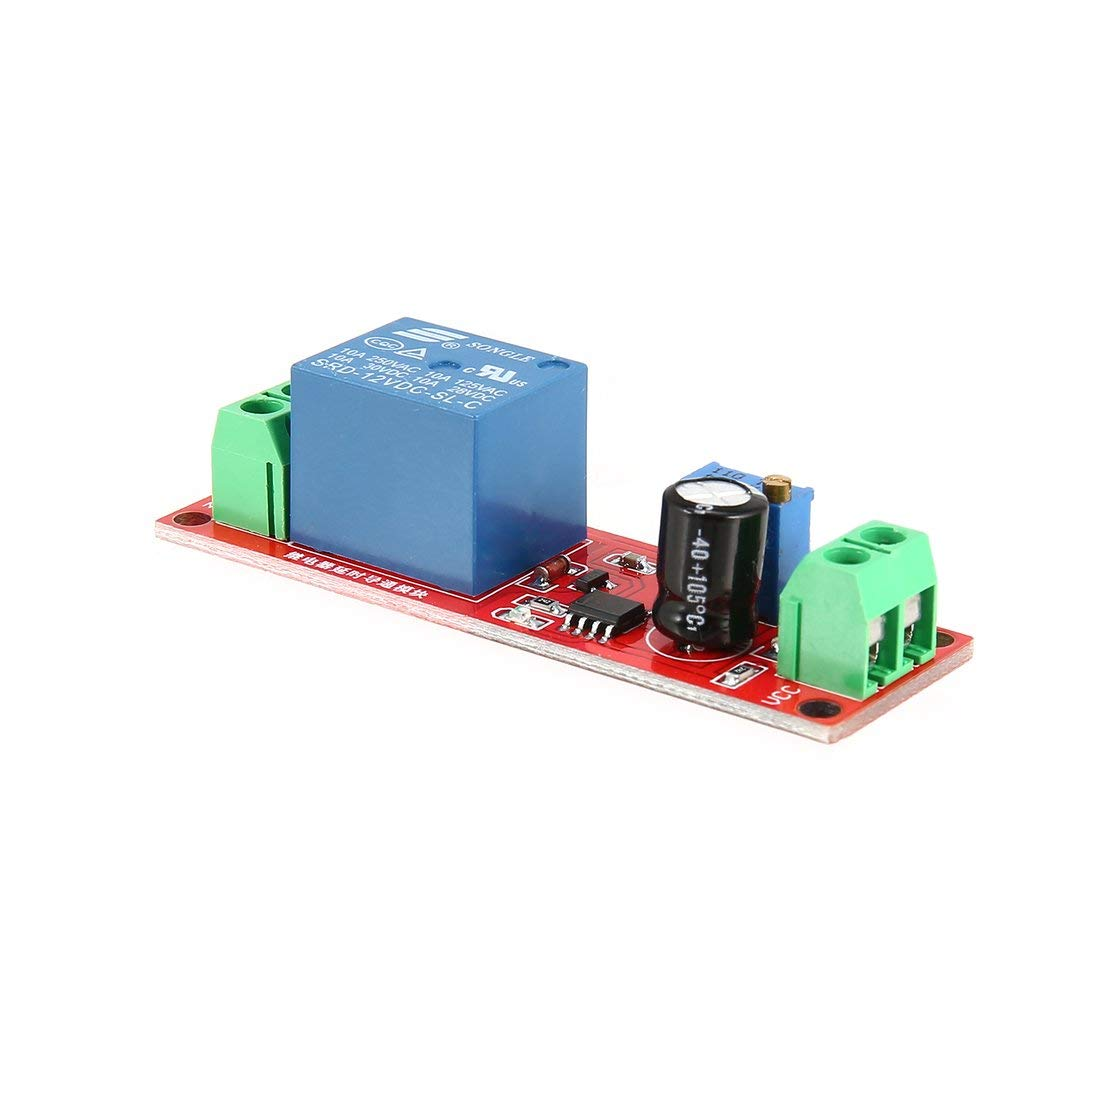 Baynne DC 12V NE555 Monostable Delay Relay Circuit Conduction Module Trigger Switch Timer Adjustable Time Shield Electronics Arduino by Baynne (Image #8)